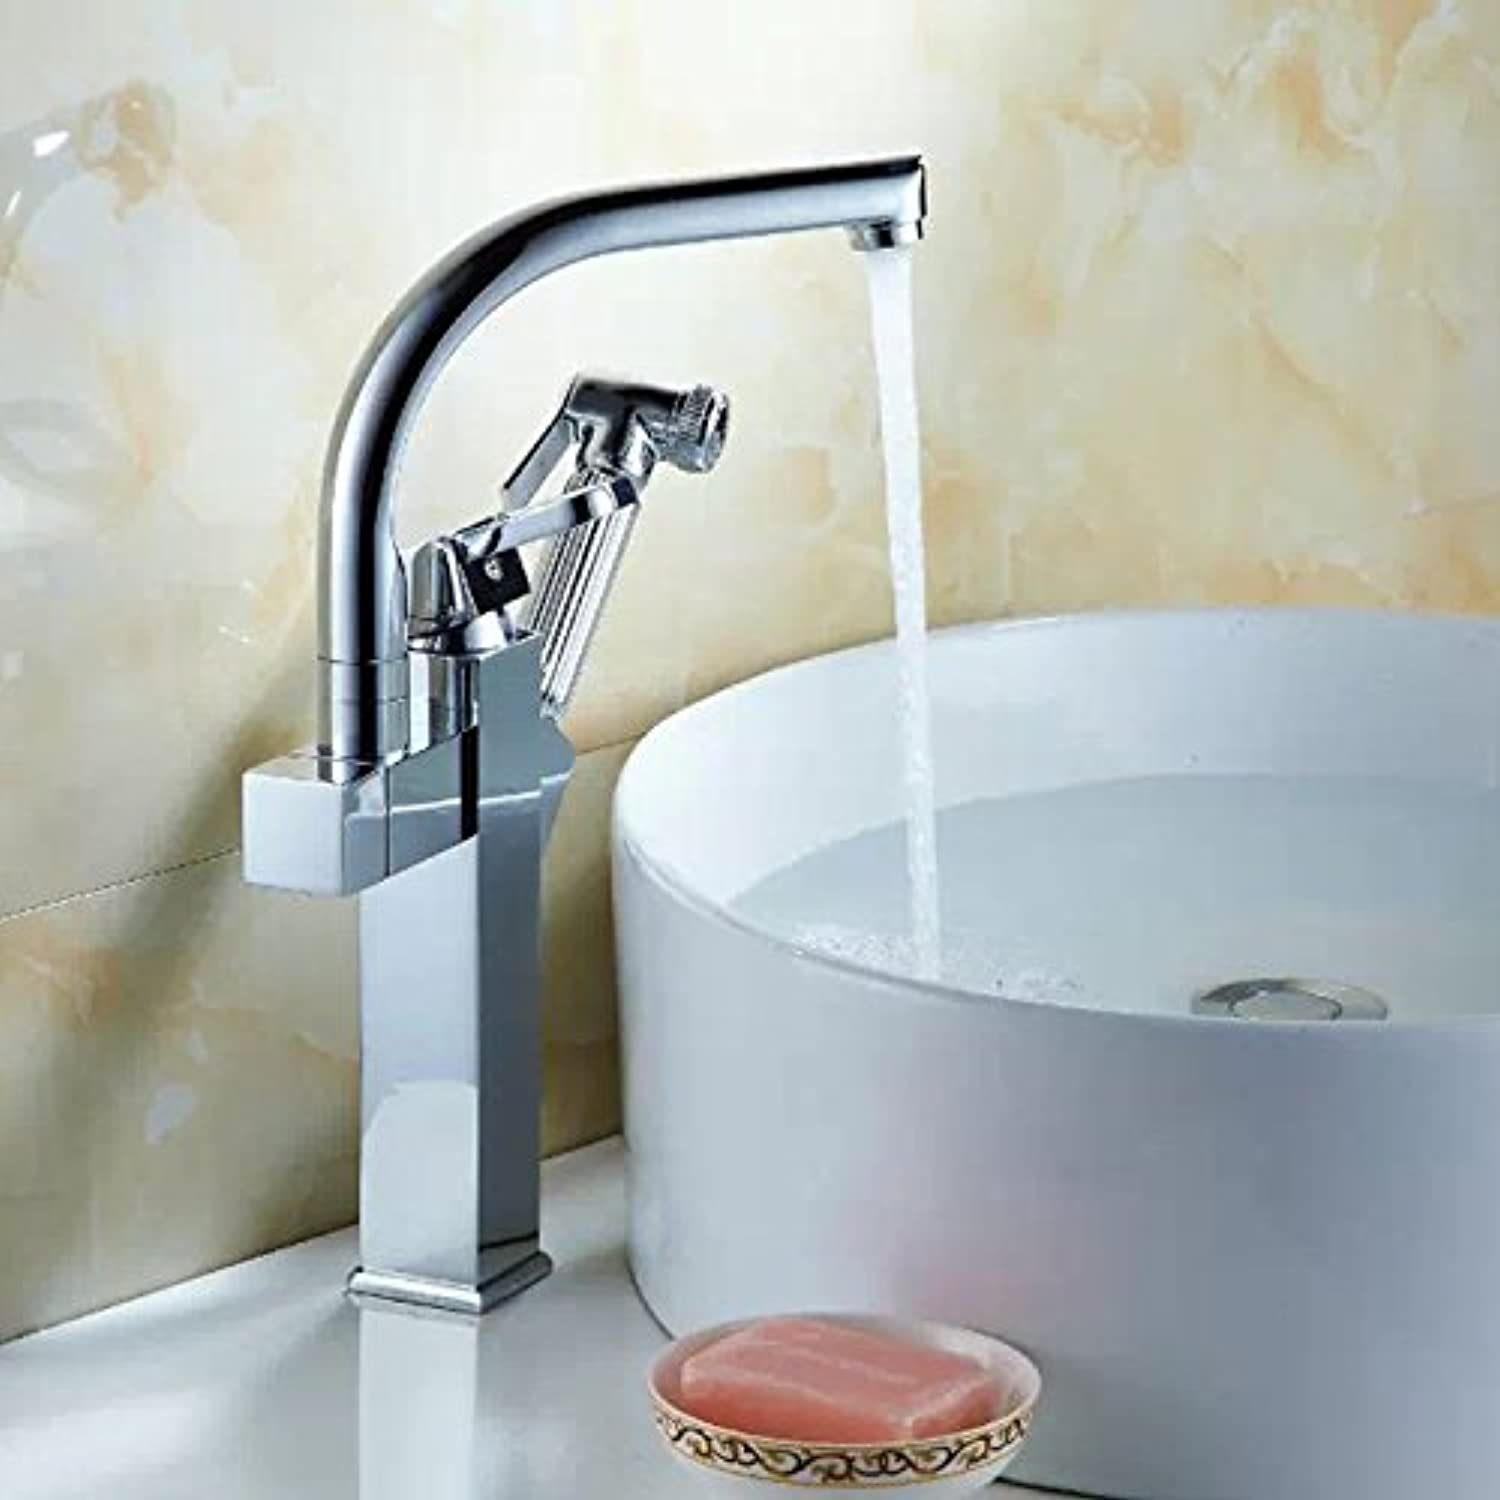 Commercial Single Lever Pull Down Kitchen Sink Faucet Brass Constructed Polished Kitchen Faucet, Single Tap, Full Copper Hot and Cold Water Mixer